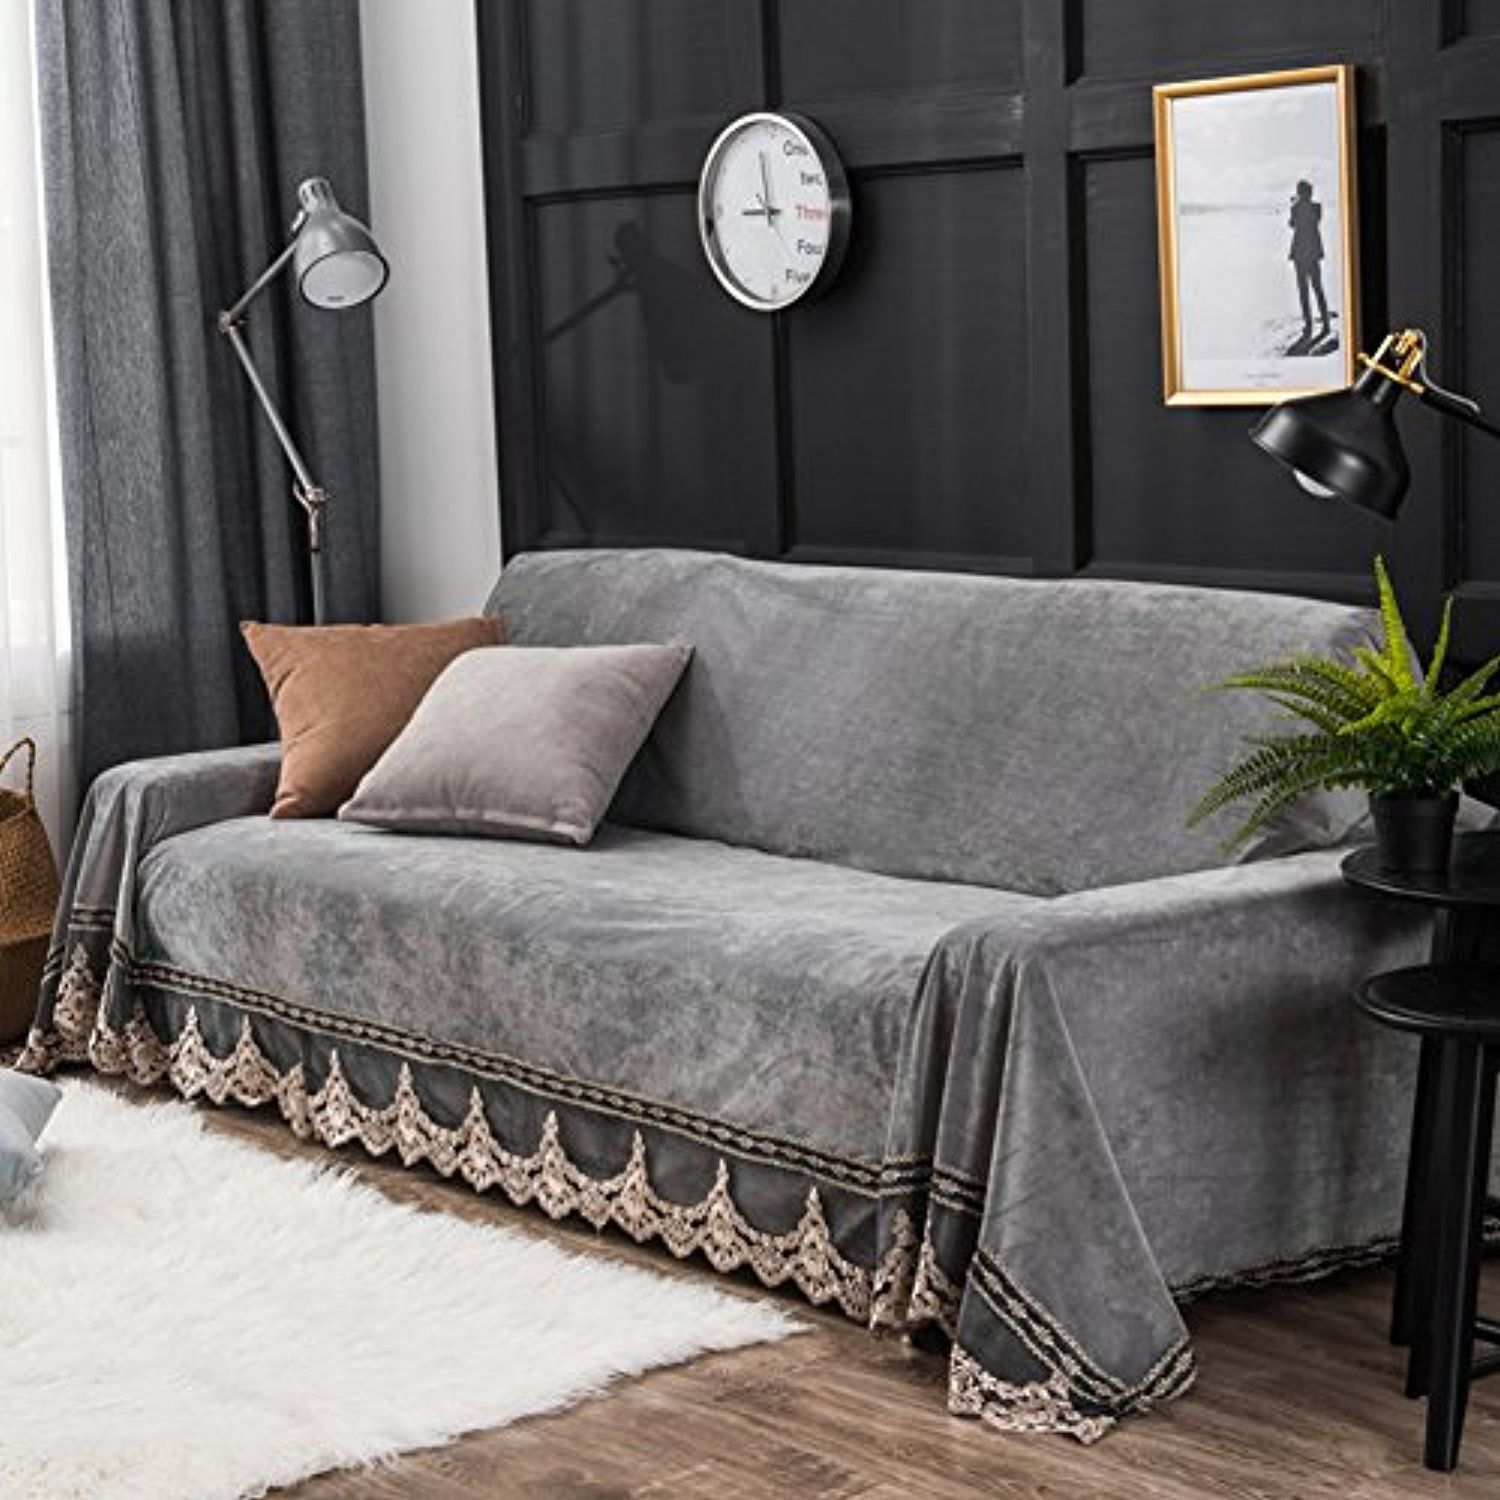 Pleasant Plush Sofa Slipcover 1 Piece Vintage Lace Suede Couch Cover Pabps2019 Chair Design Images Pabps2019Com